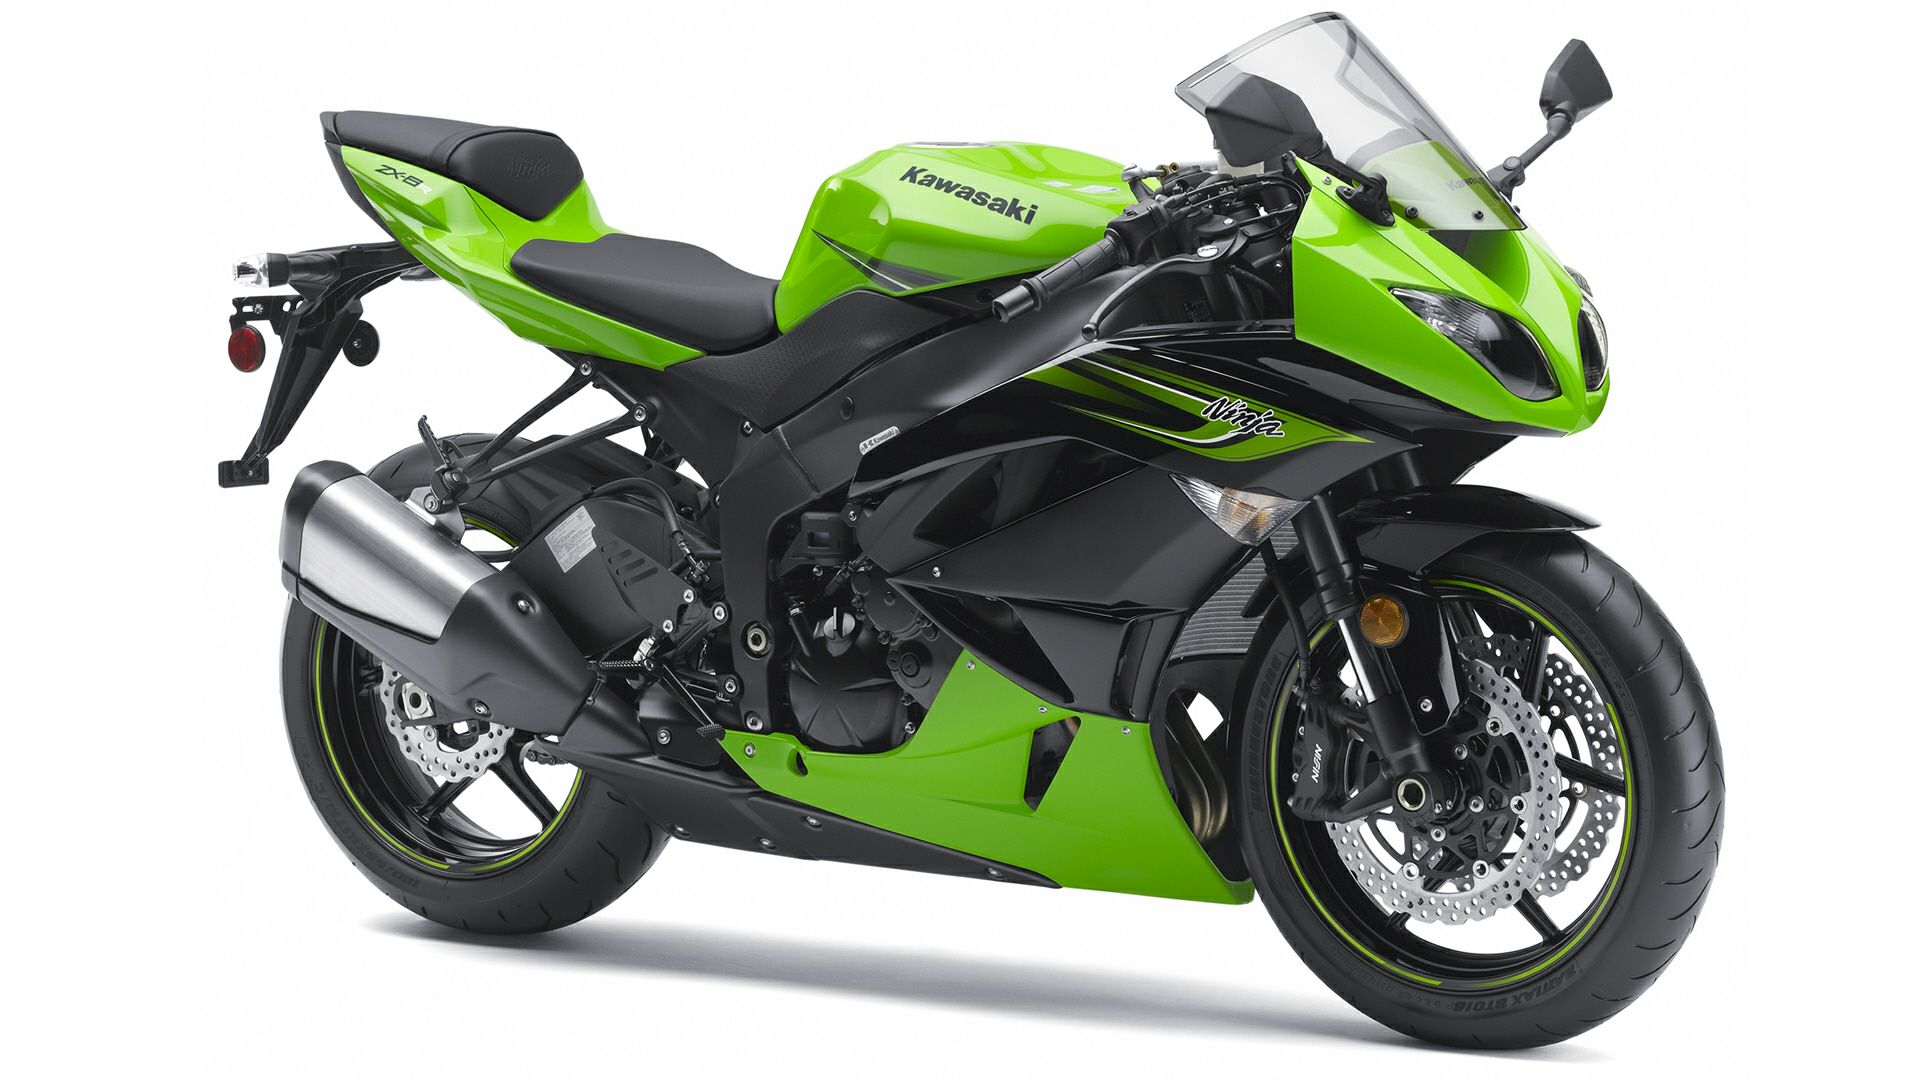 Kawasaki Ninja Bike HD 1080p Wallpaper